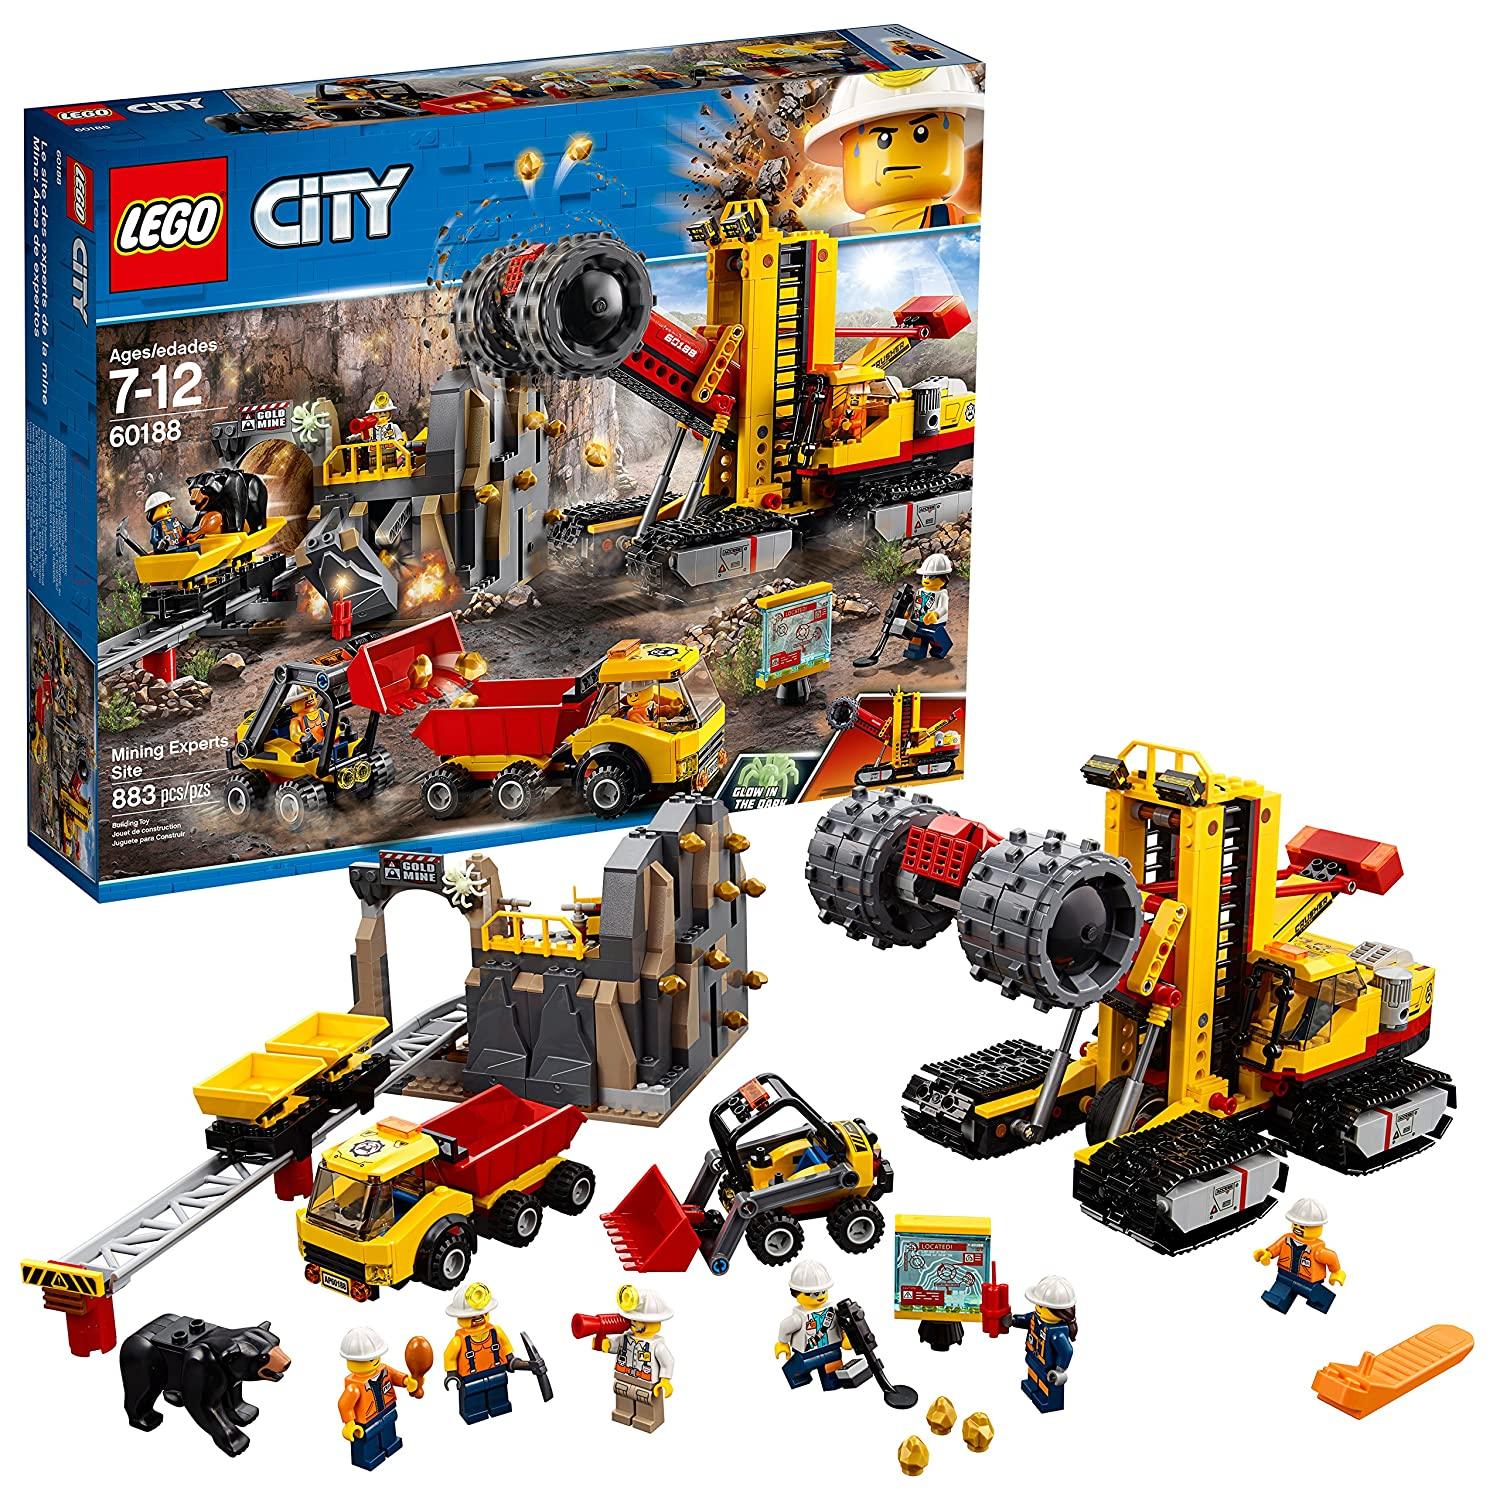 LEGO City Mining Experts Site.